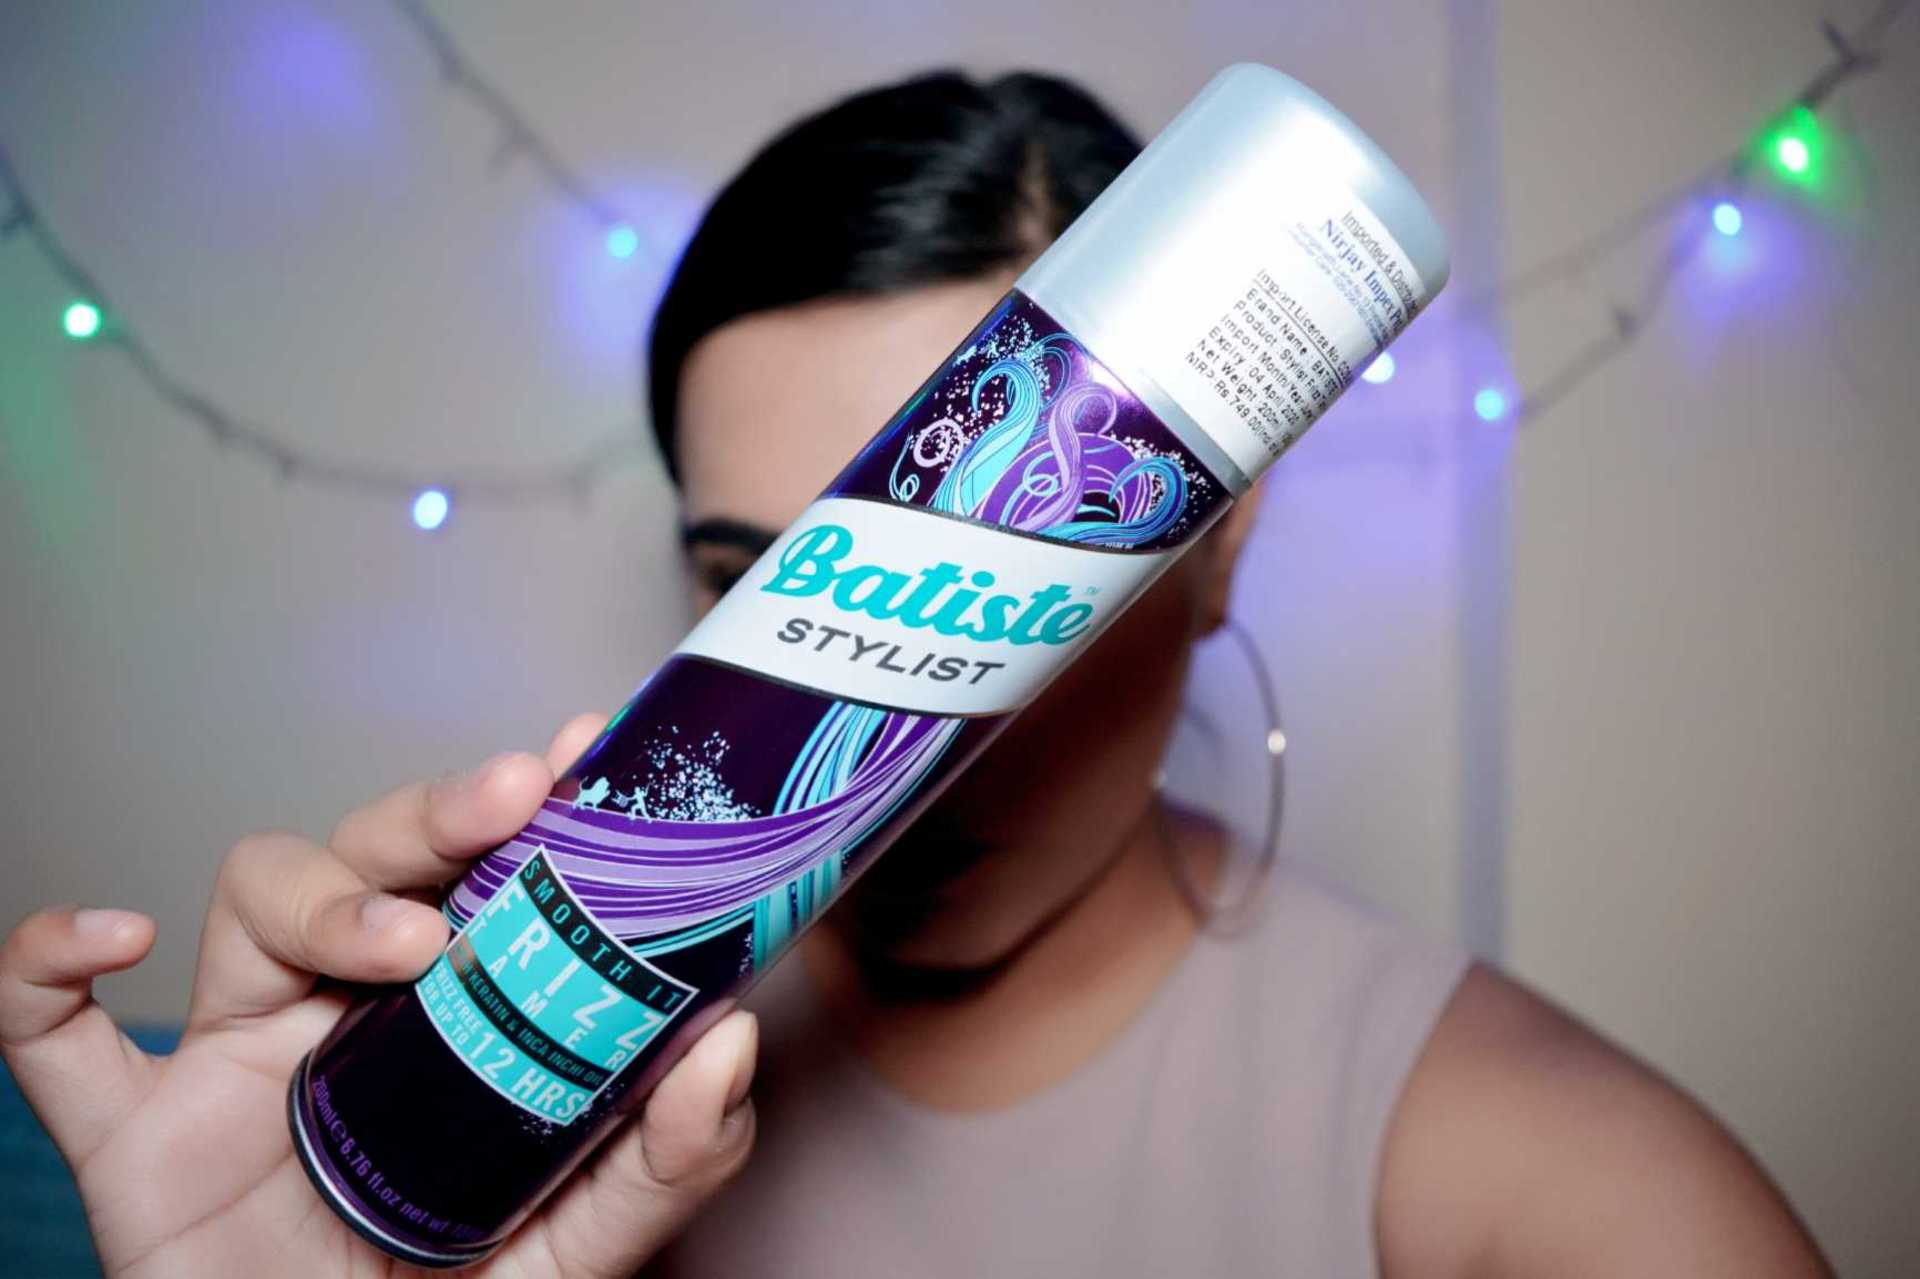 Batiste Stylist Frizz Tamer Spray Review image